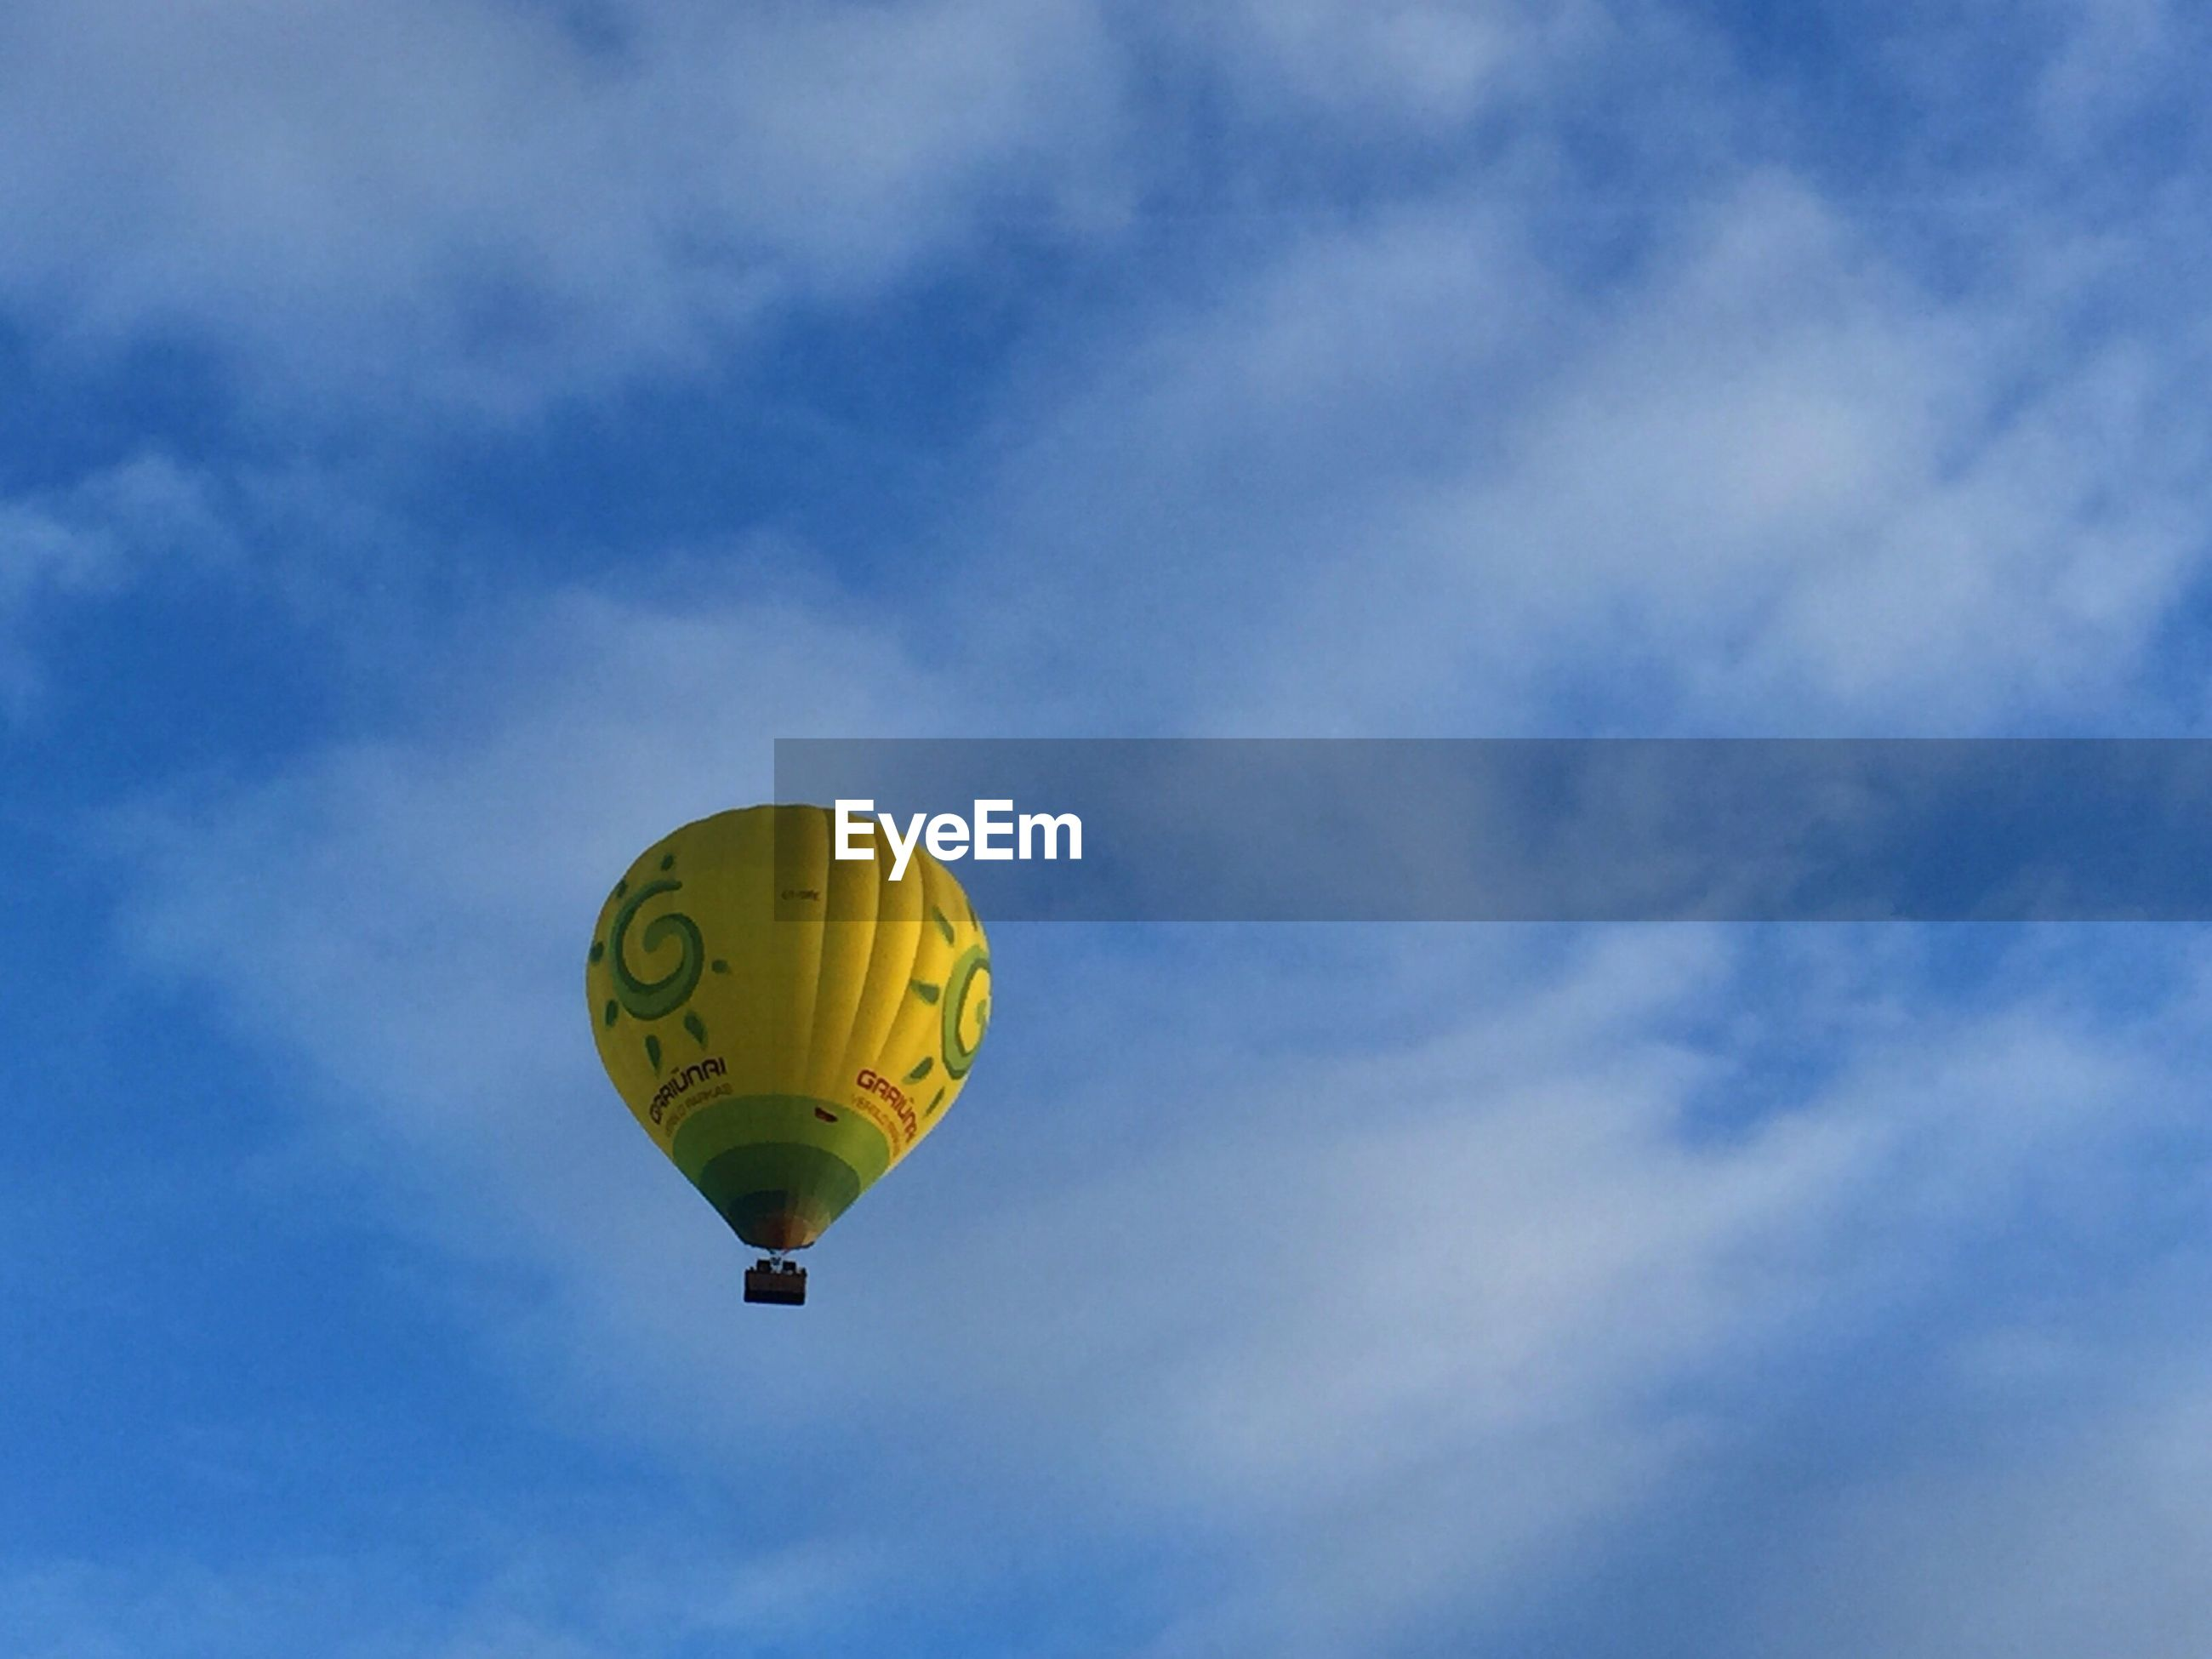 adventure, mid-air, sky, cloud - sky, hot air balloon, flying, parachute, outdoors, day, low angle view, leisure activity, real people, extreme sports, ballooning festival, yellow, multi colored, one person, people